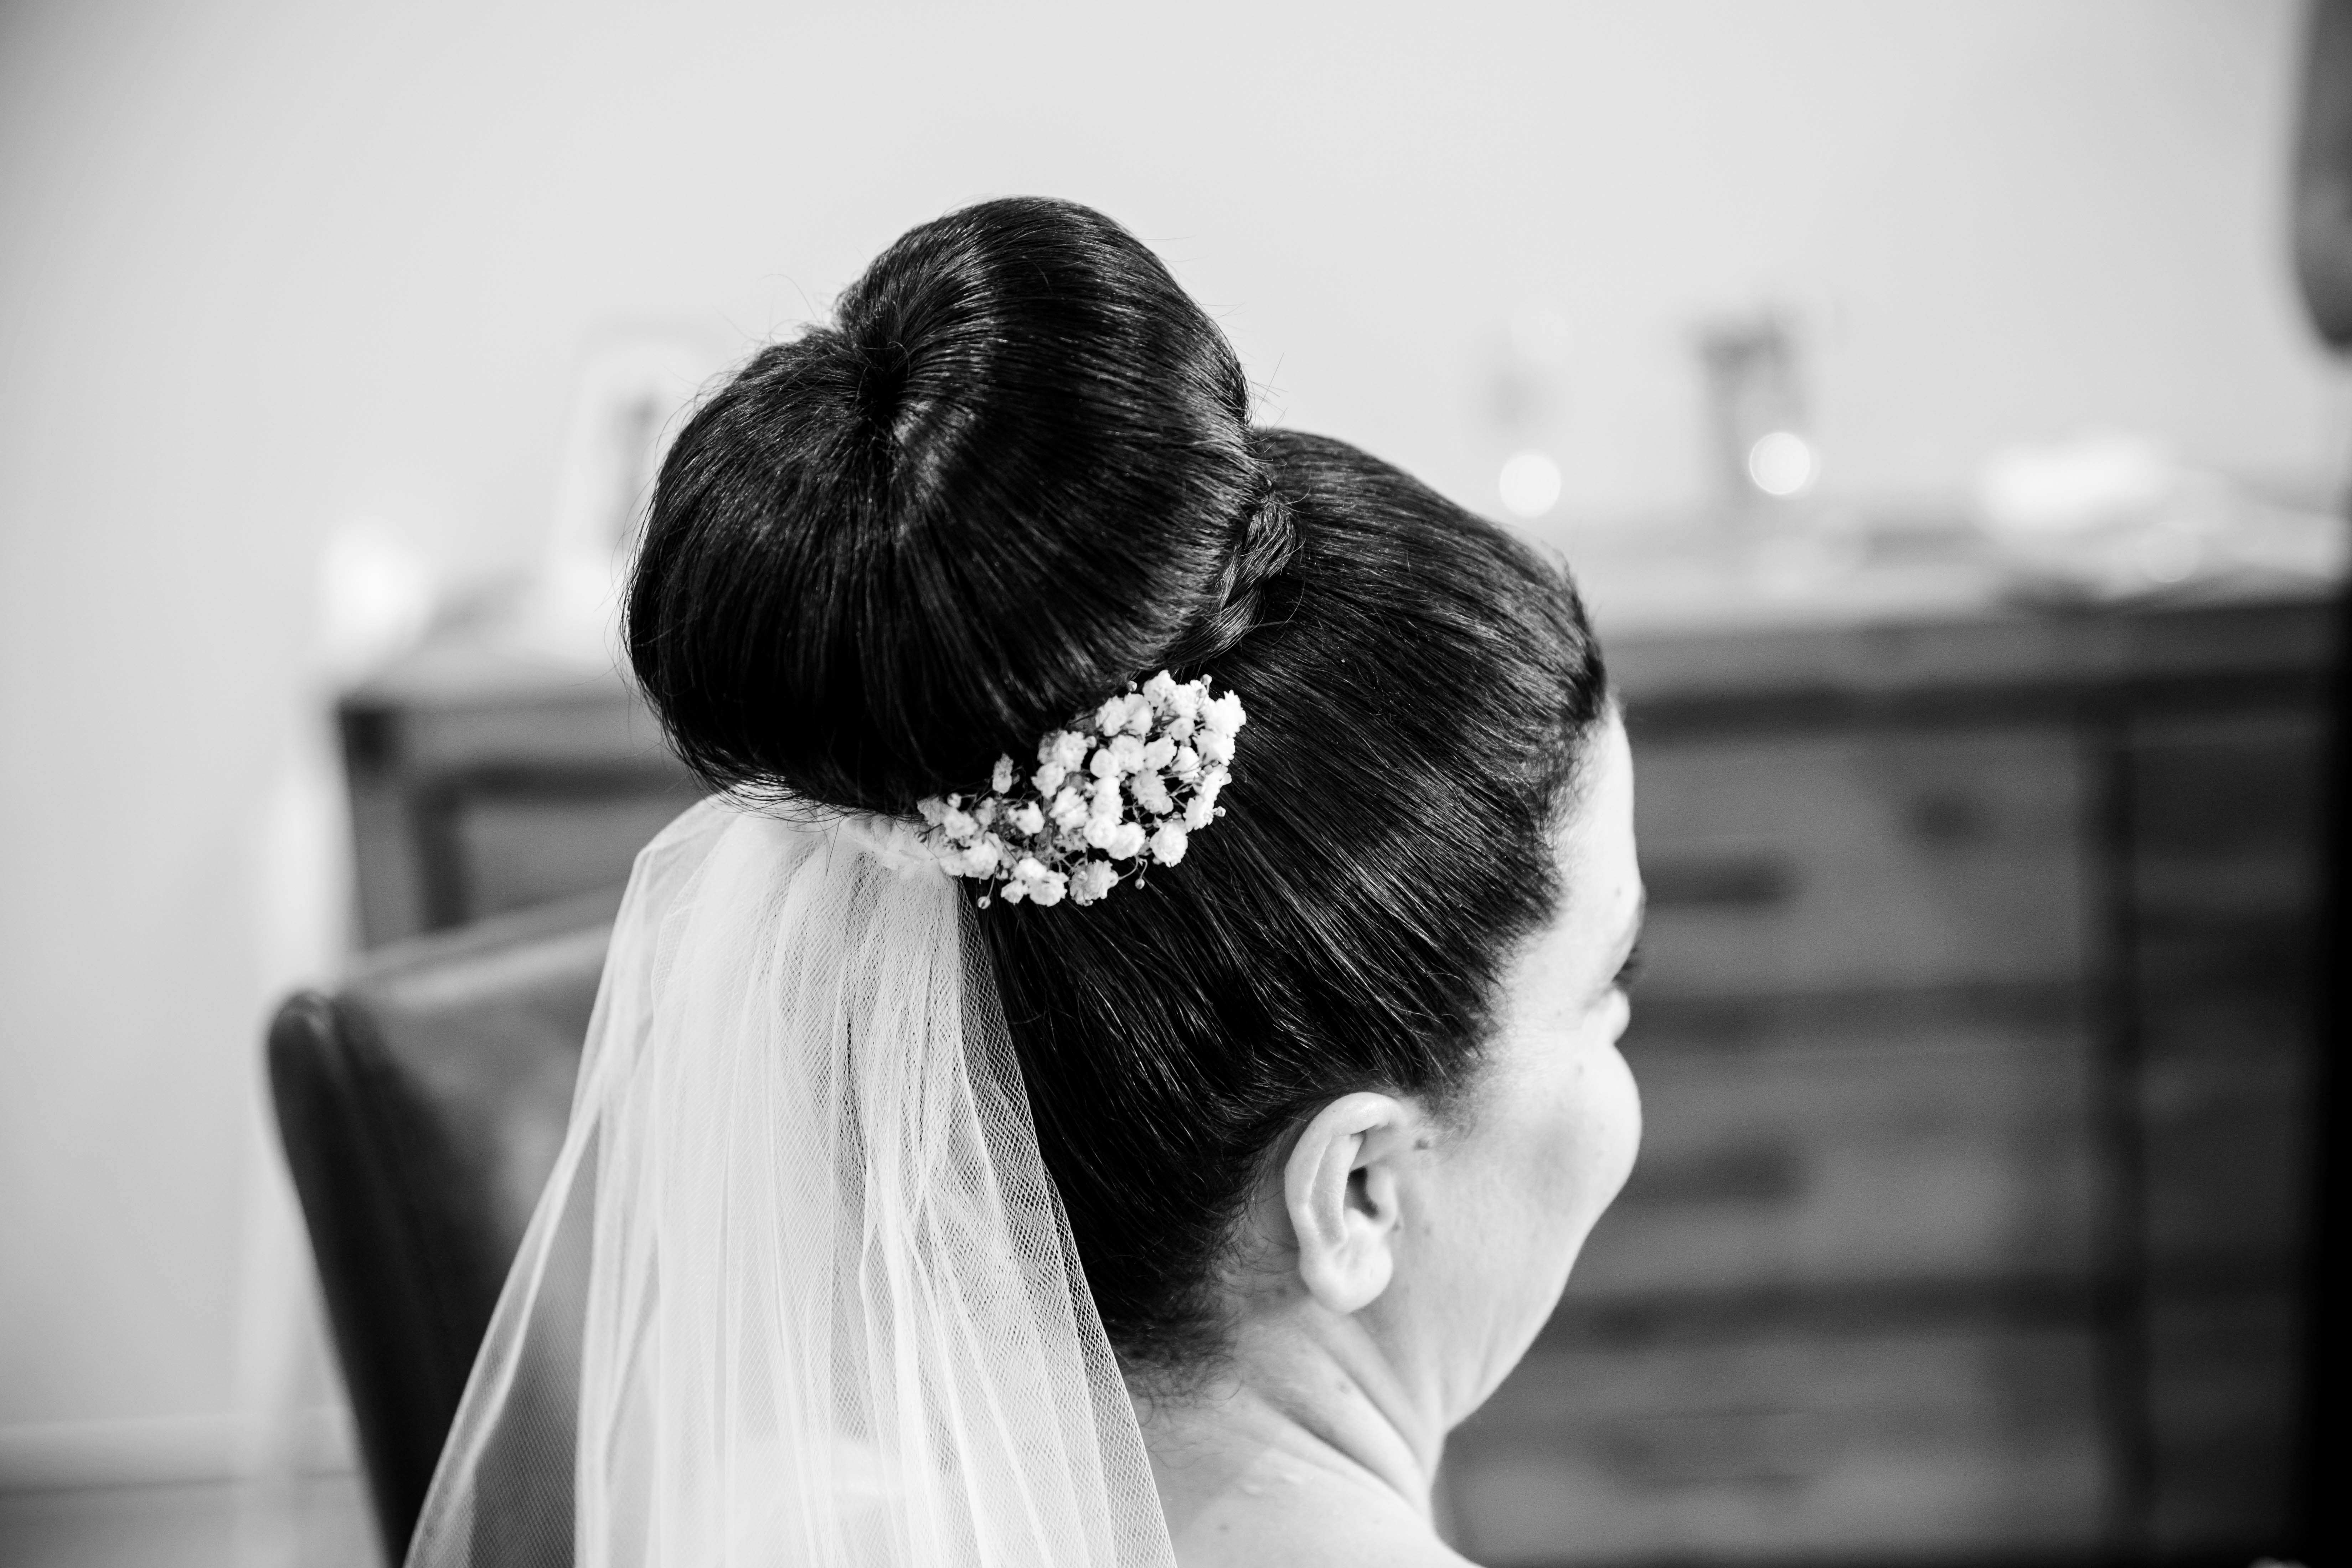 Bride Hair, Hairstyle for Bride, Black and white wedding photo, wedding image, wedding photographer, Fiona K Photography, Brisbane Wedding Photographer